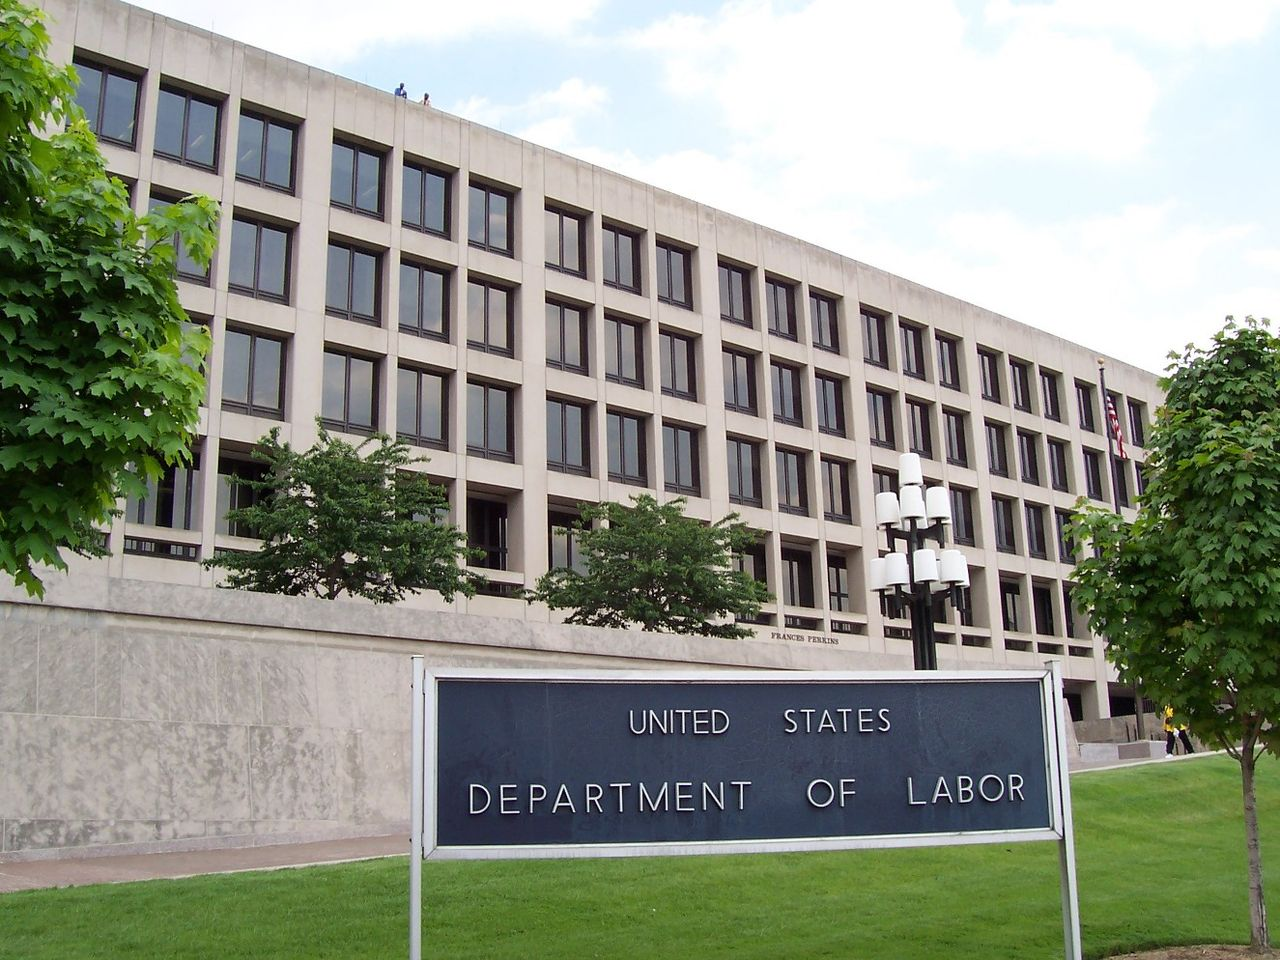 Dept of Labor building